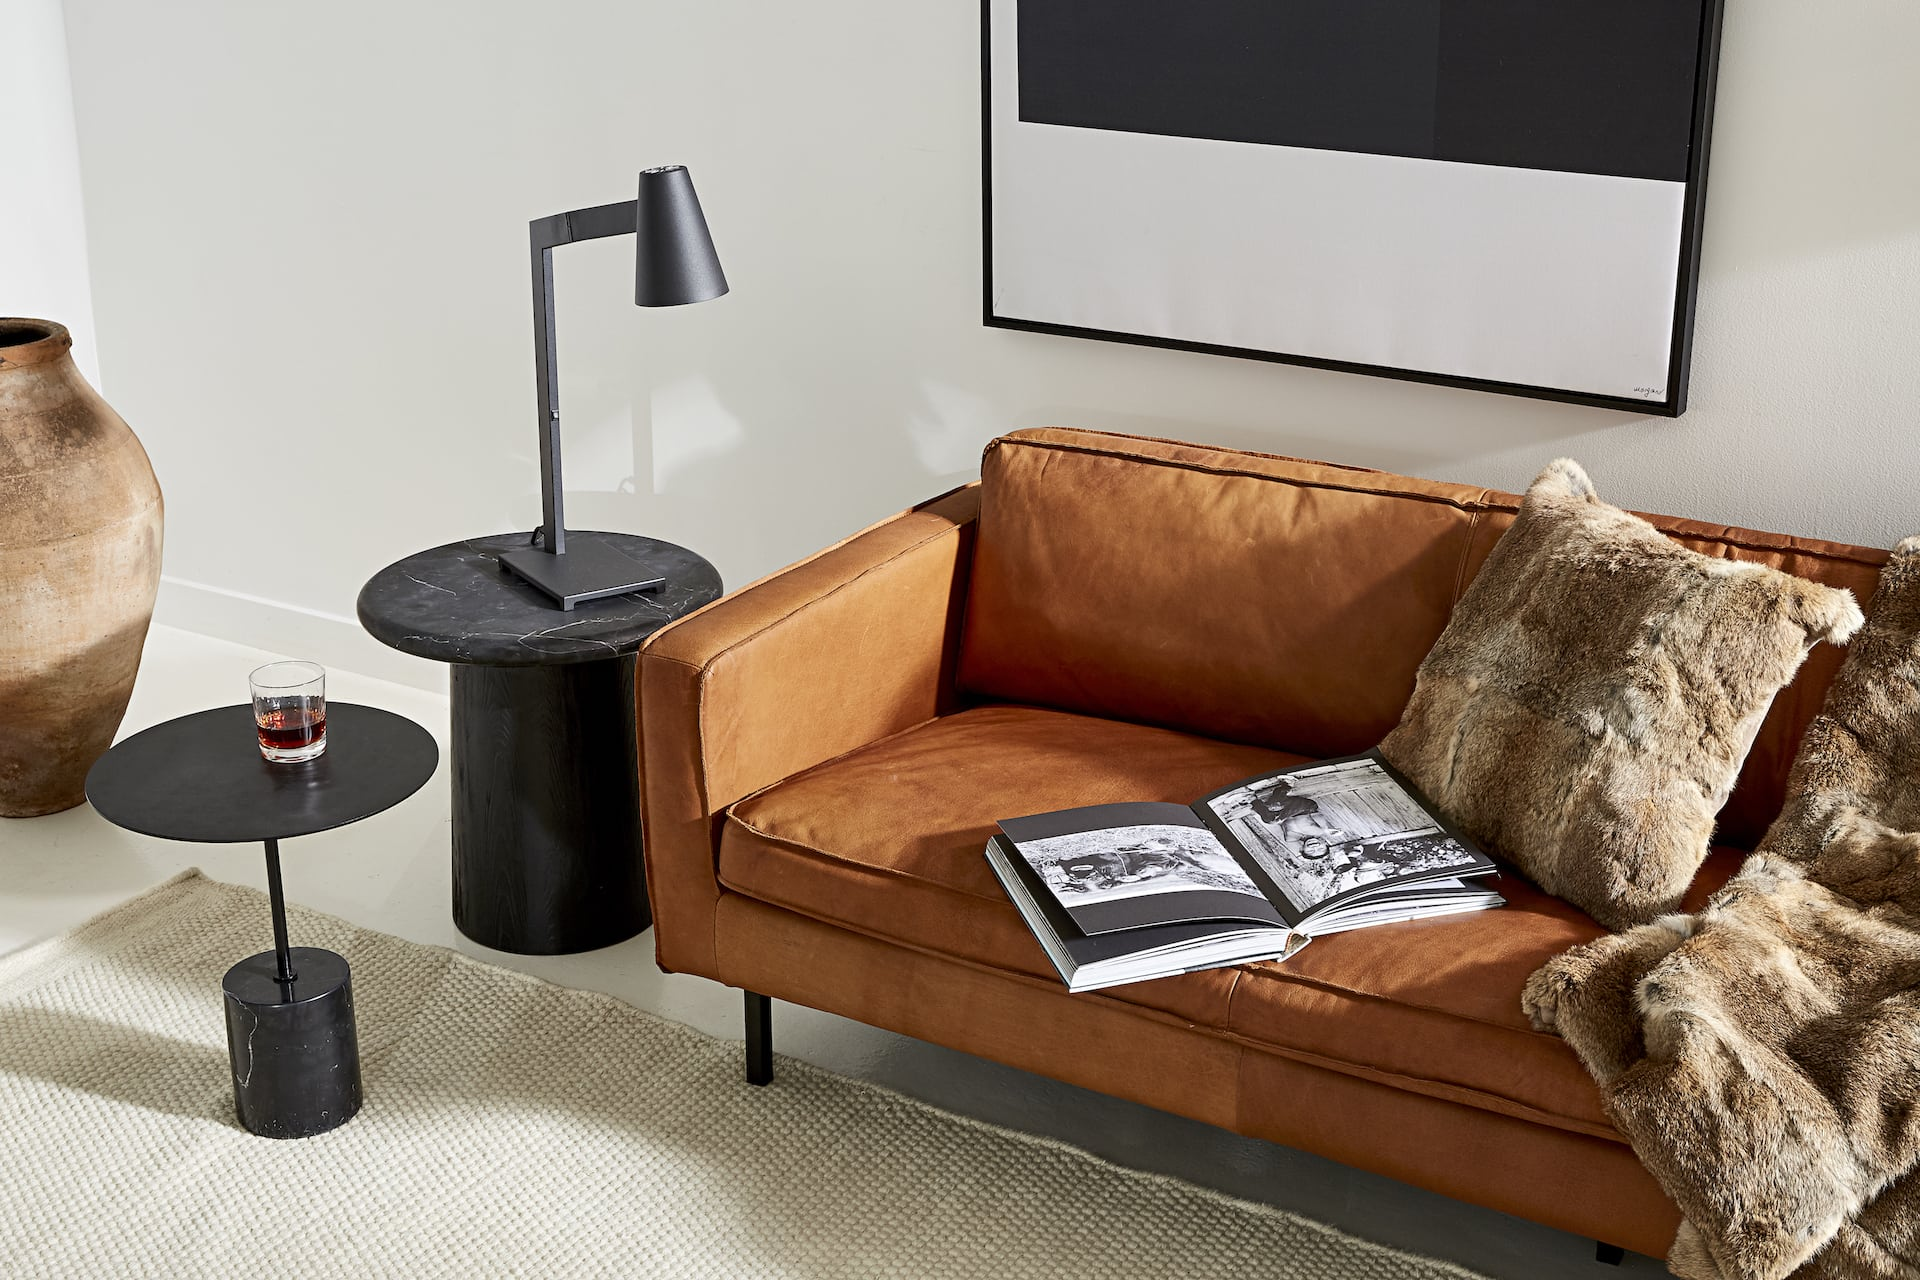 gaspard tan leather sofa from horgans with black side table luxe living room